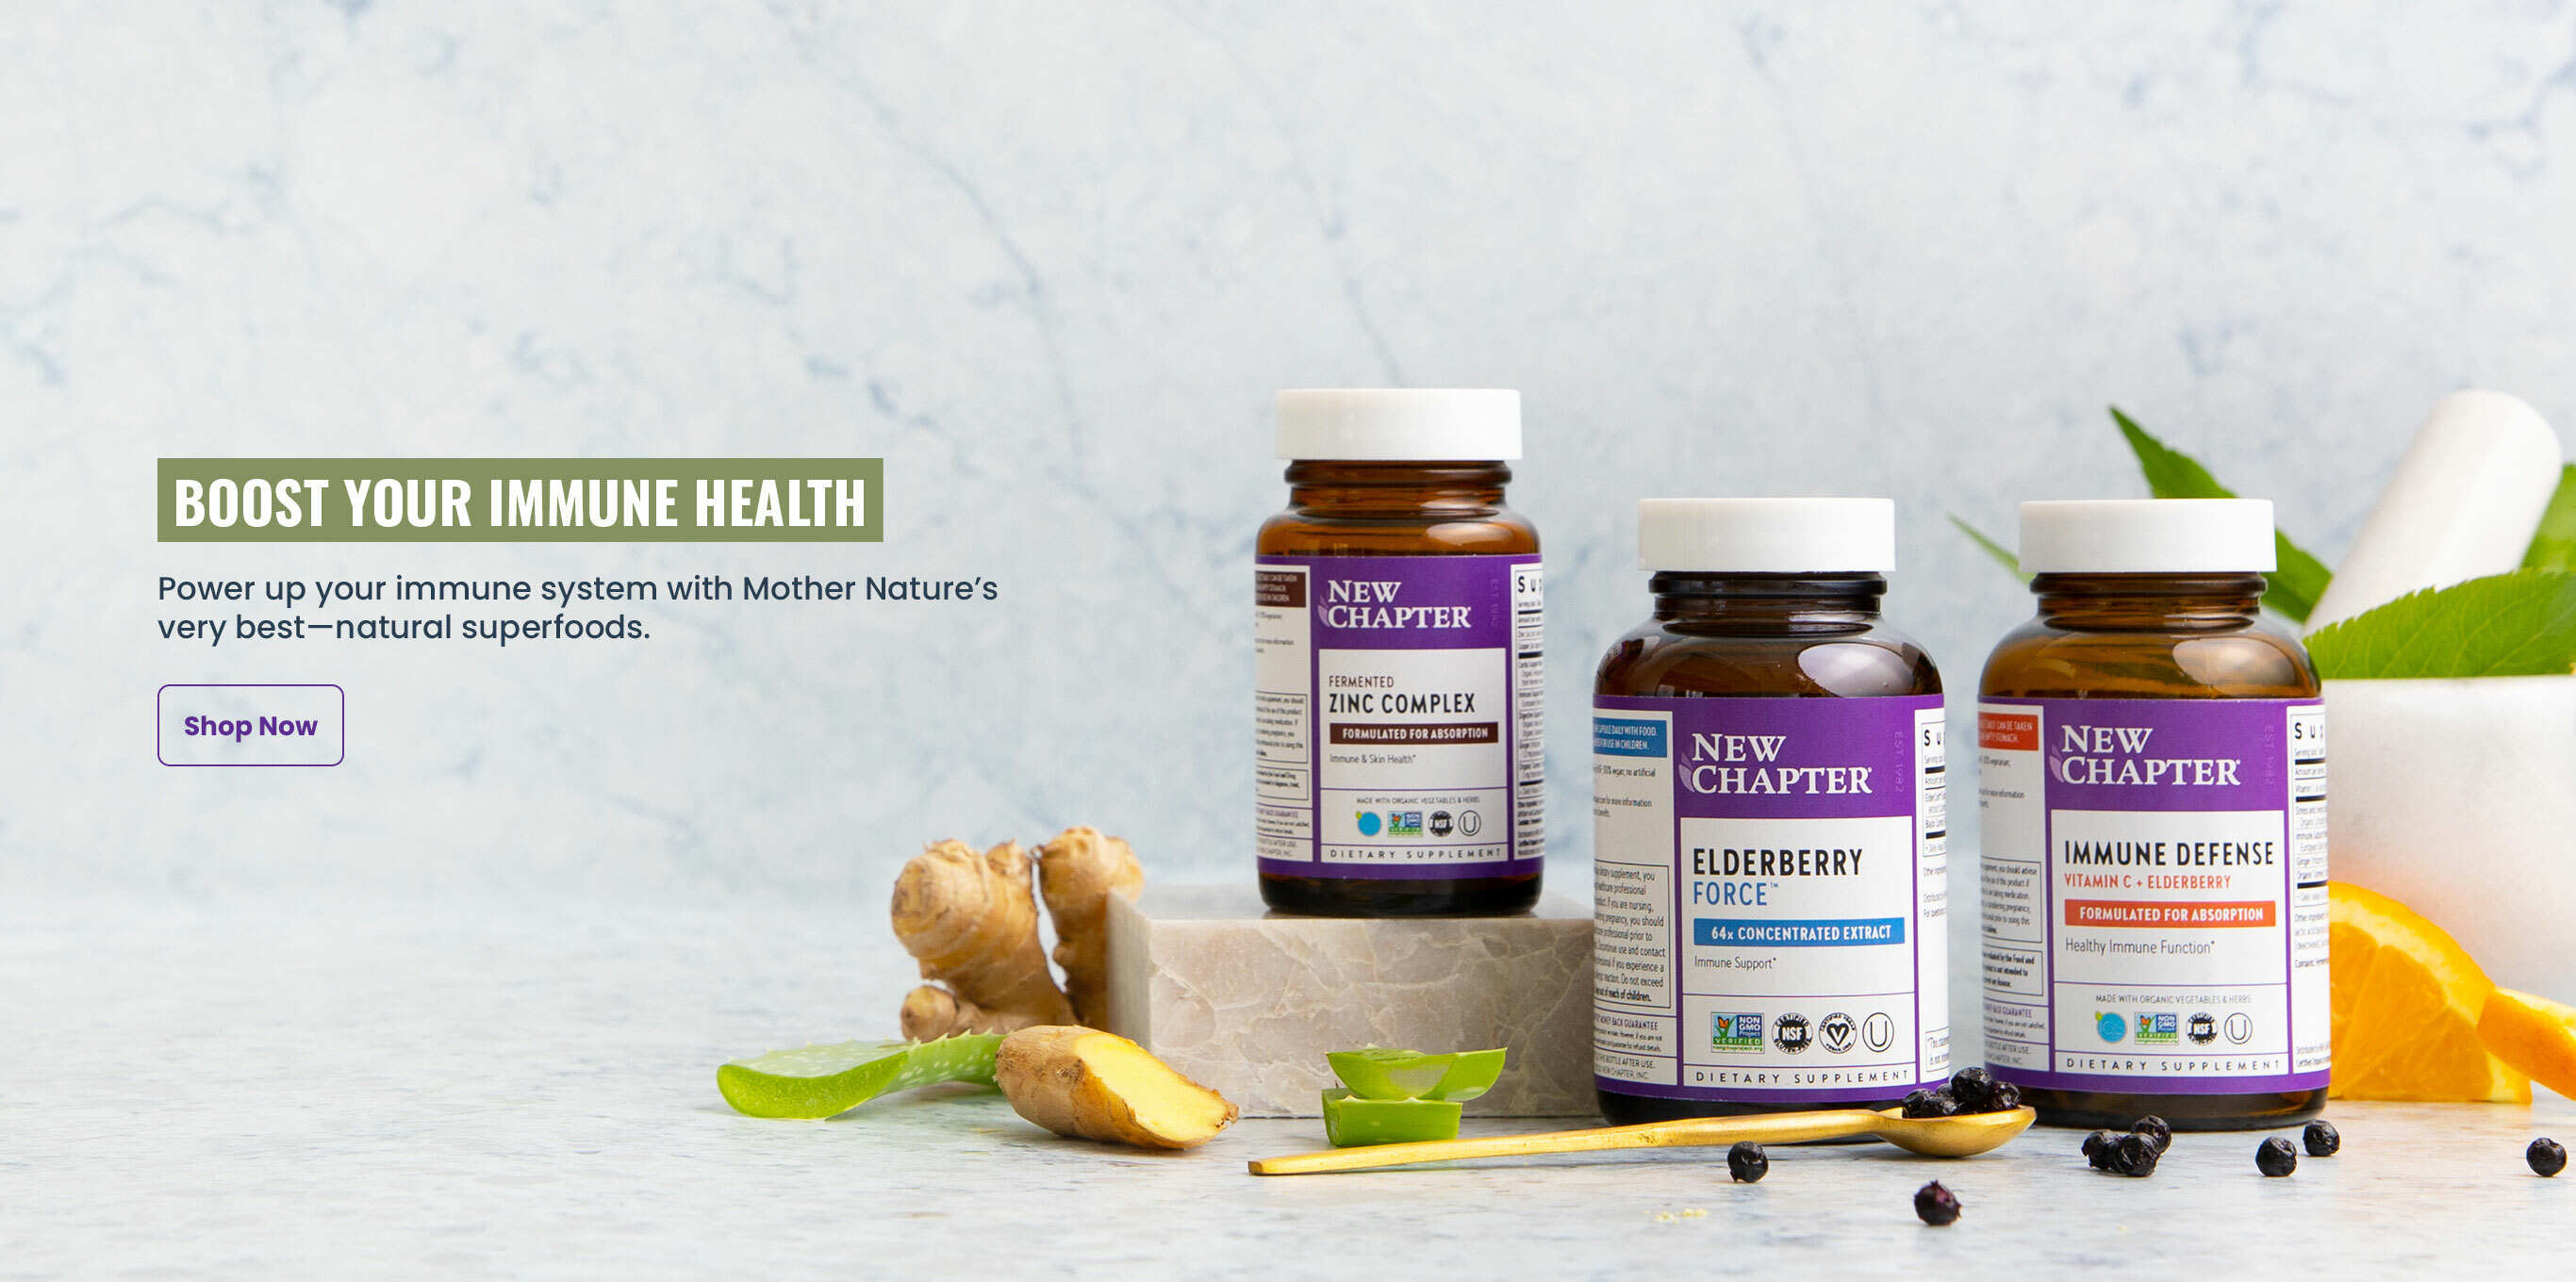 BOOST YOUR IMMUNE HEALTH